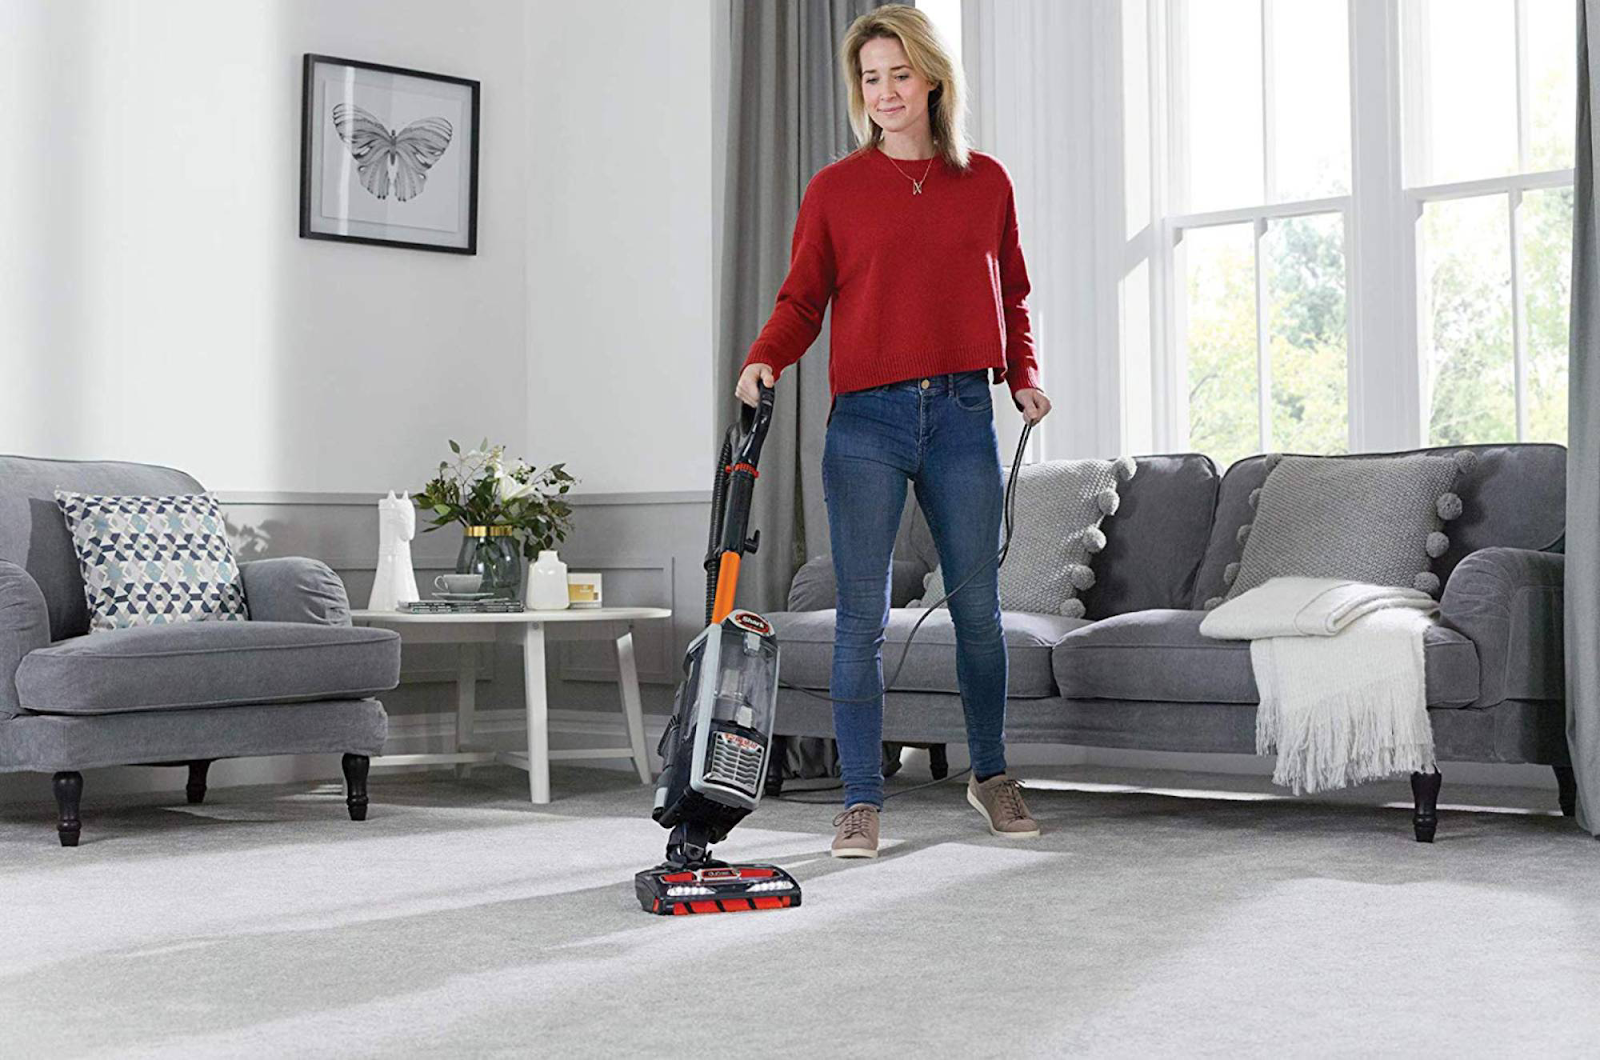 A vacuum cleaner helps you improve your domestic hygiene quickly and saves you valuable time Source: houseofjunkie.com